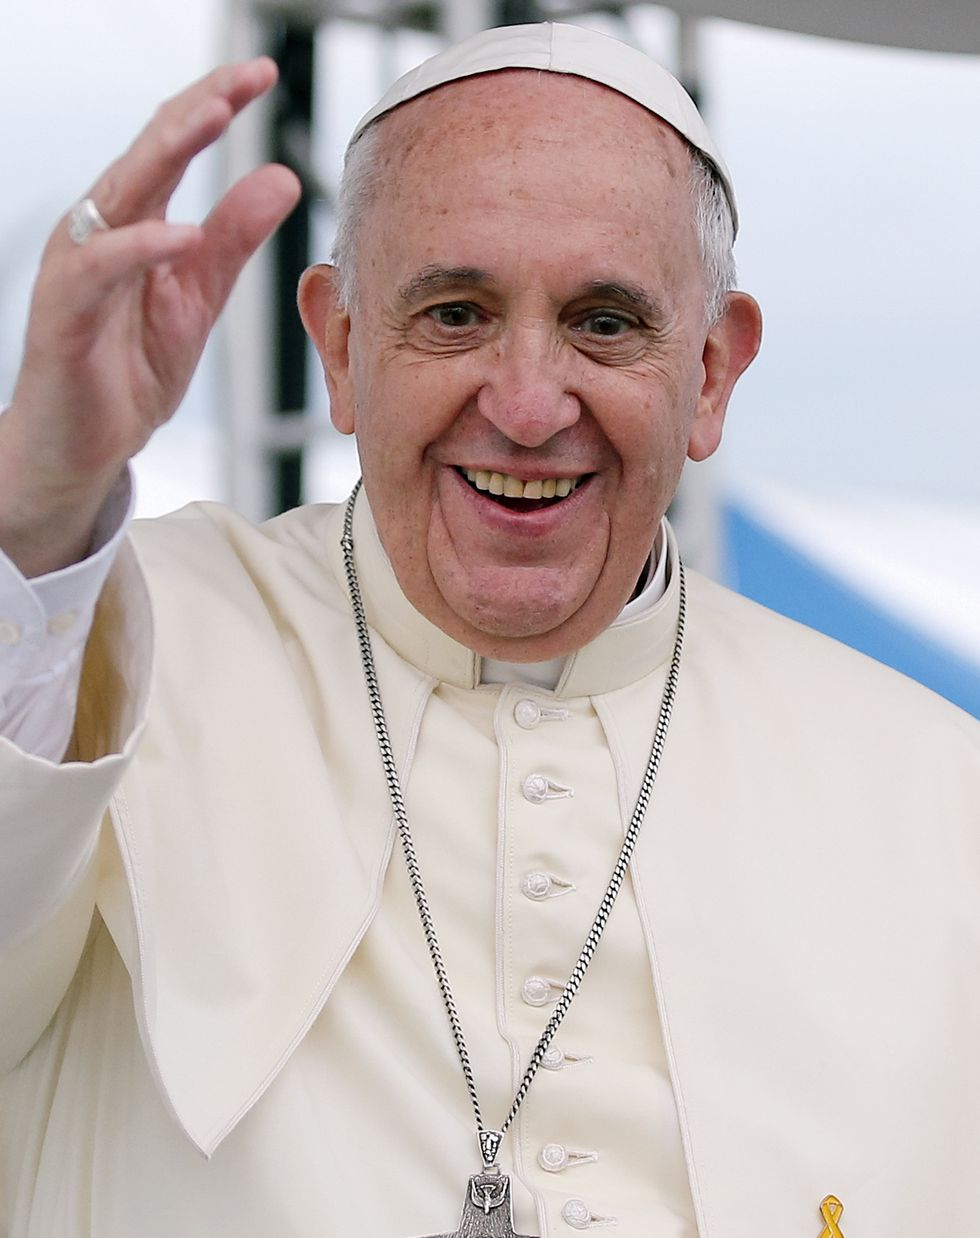 Pope Francis Offends Rabbit Breeders With His Recent Birth Control Remarks